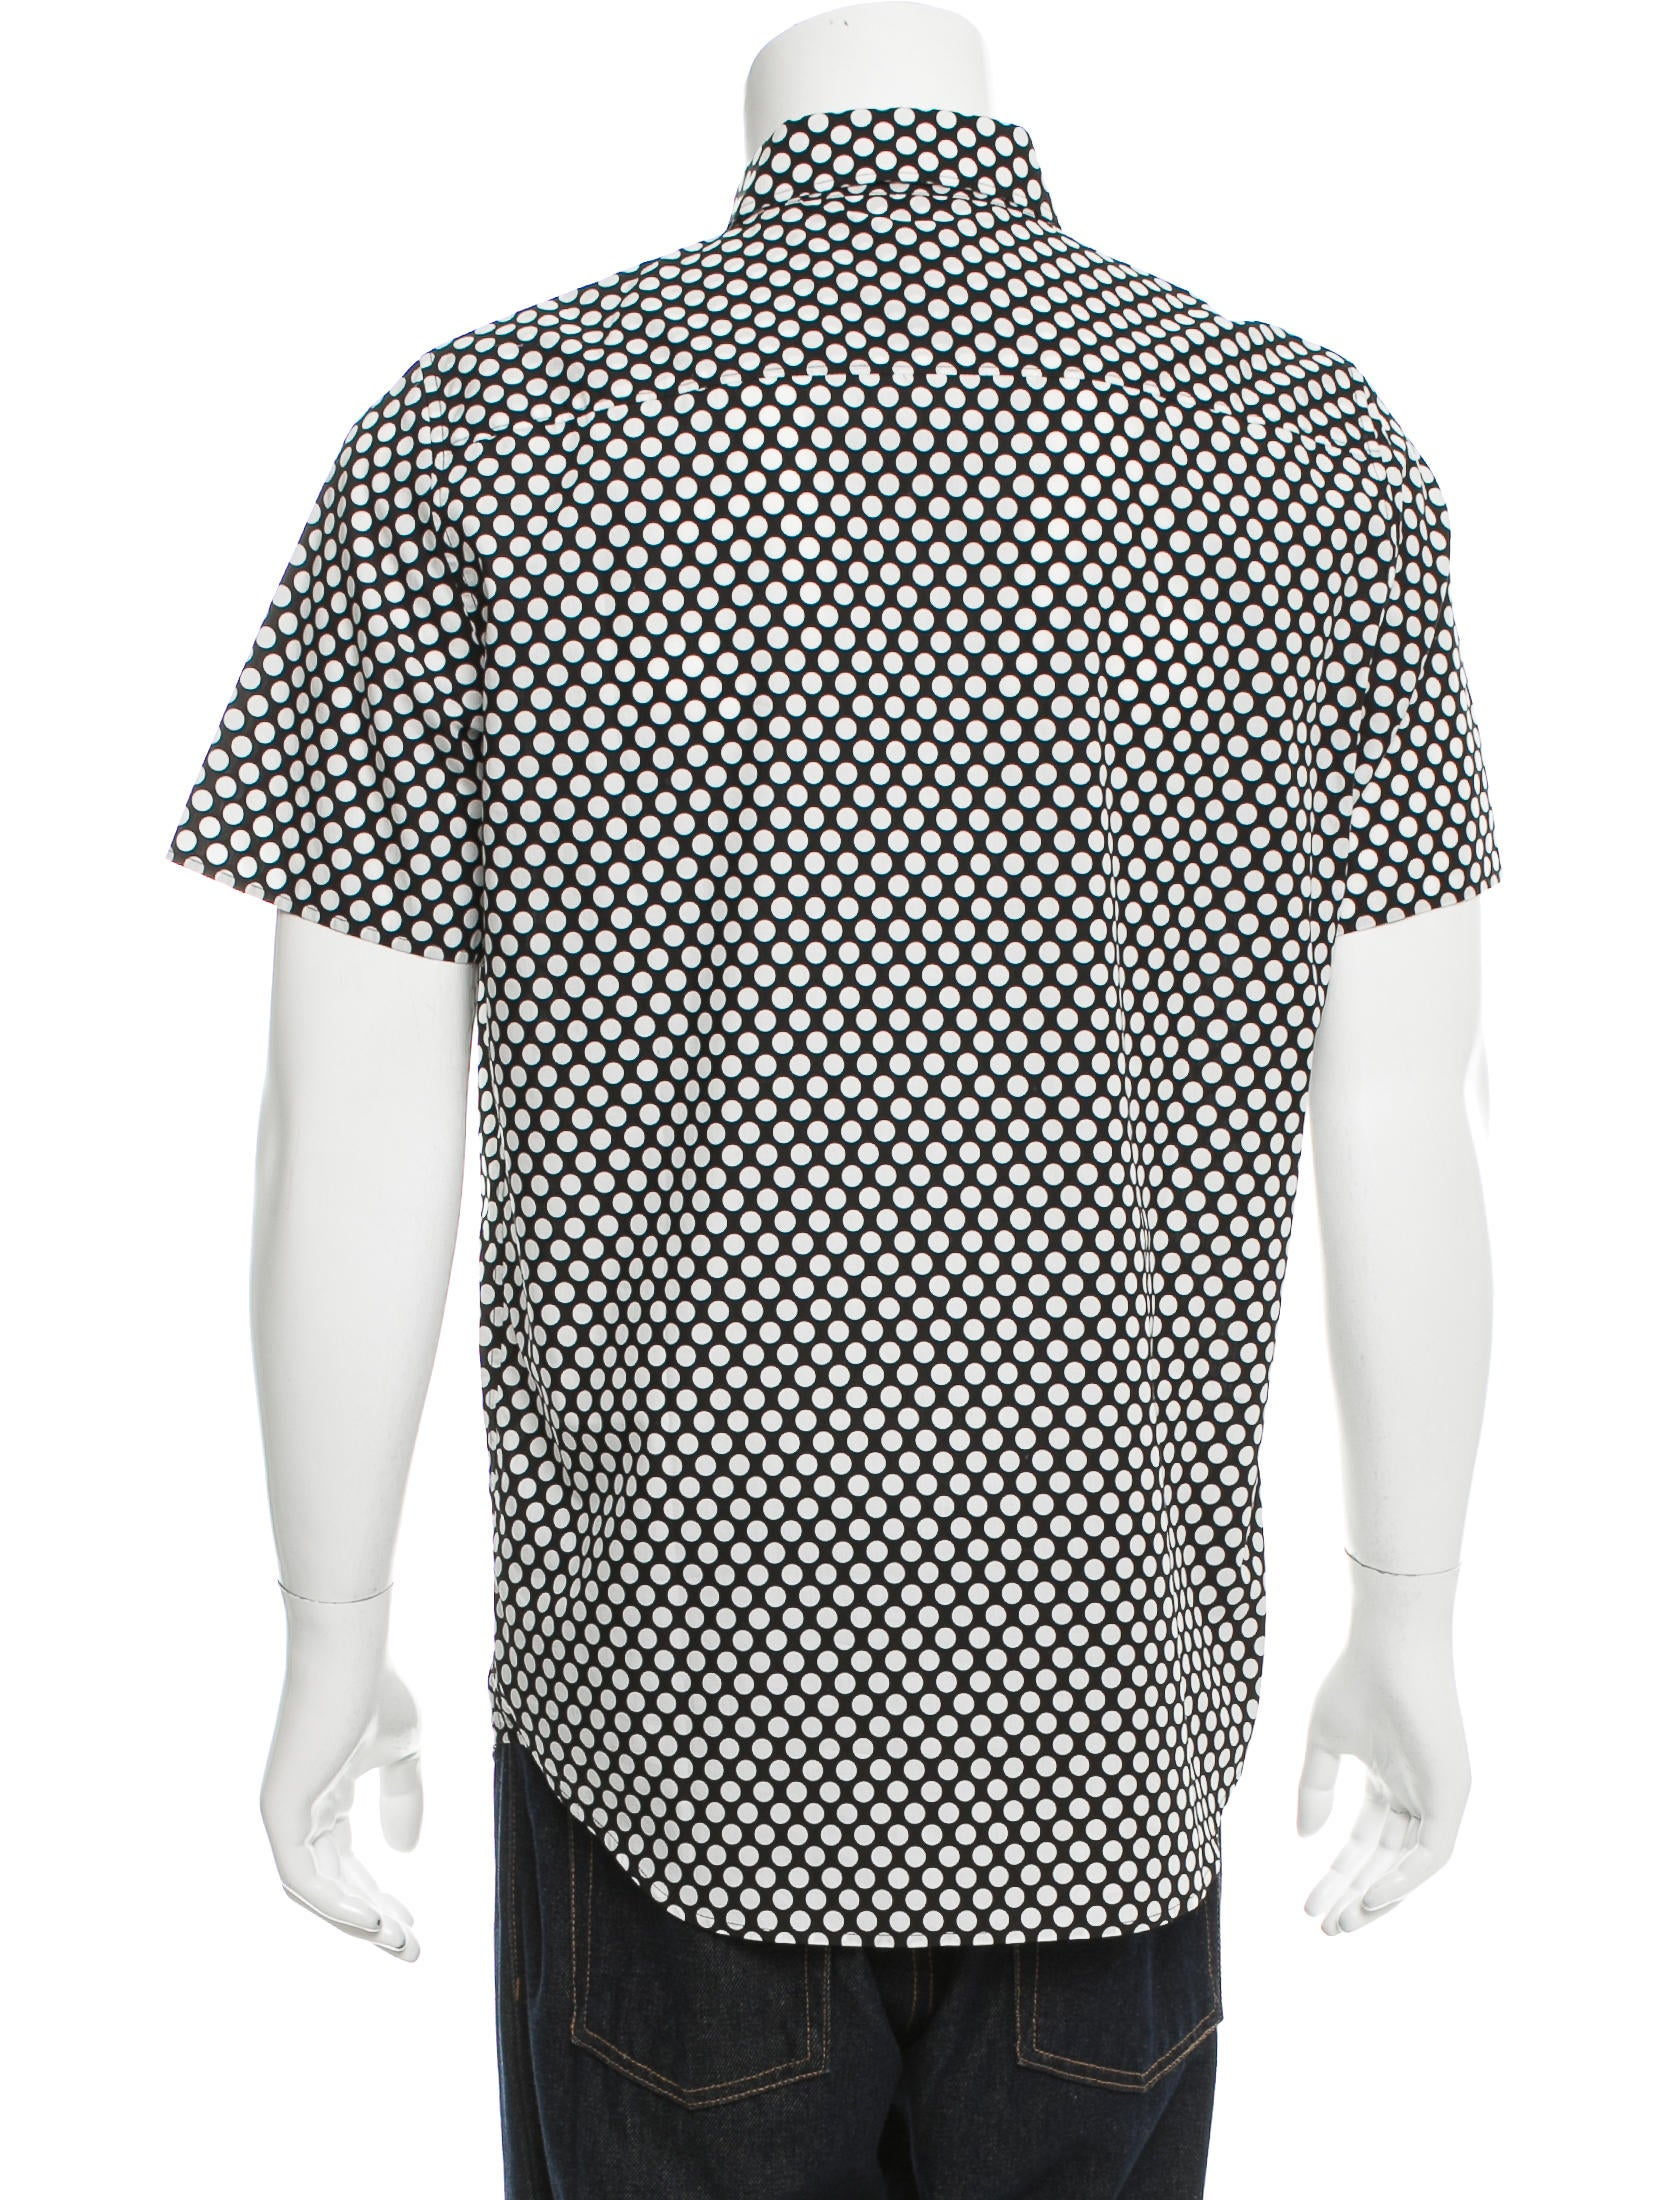 Burberry prorsum short sleeve polka dot shirt clothing for Mens polka dot shirt short sleeve